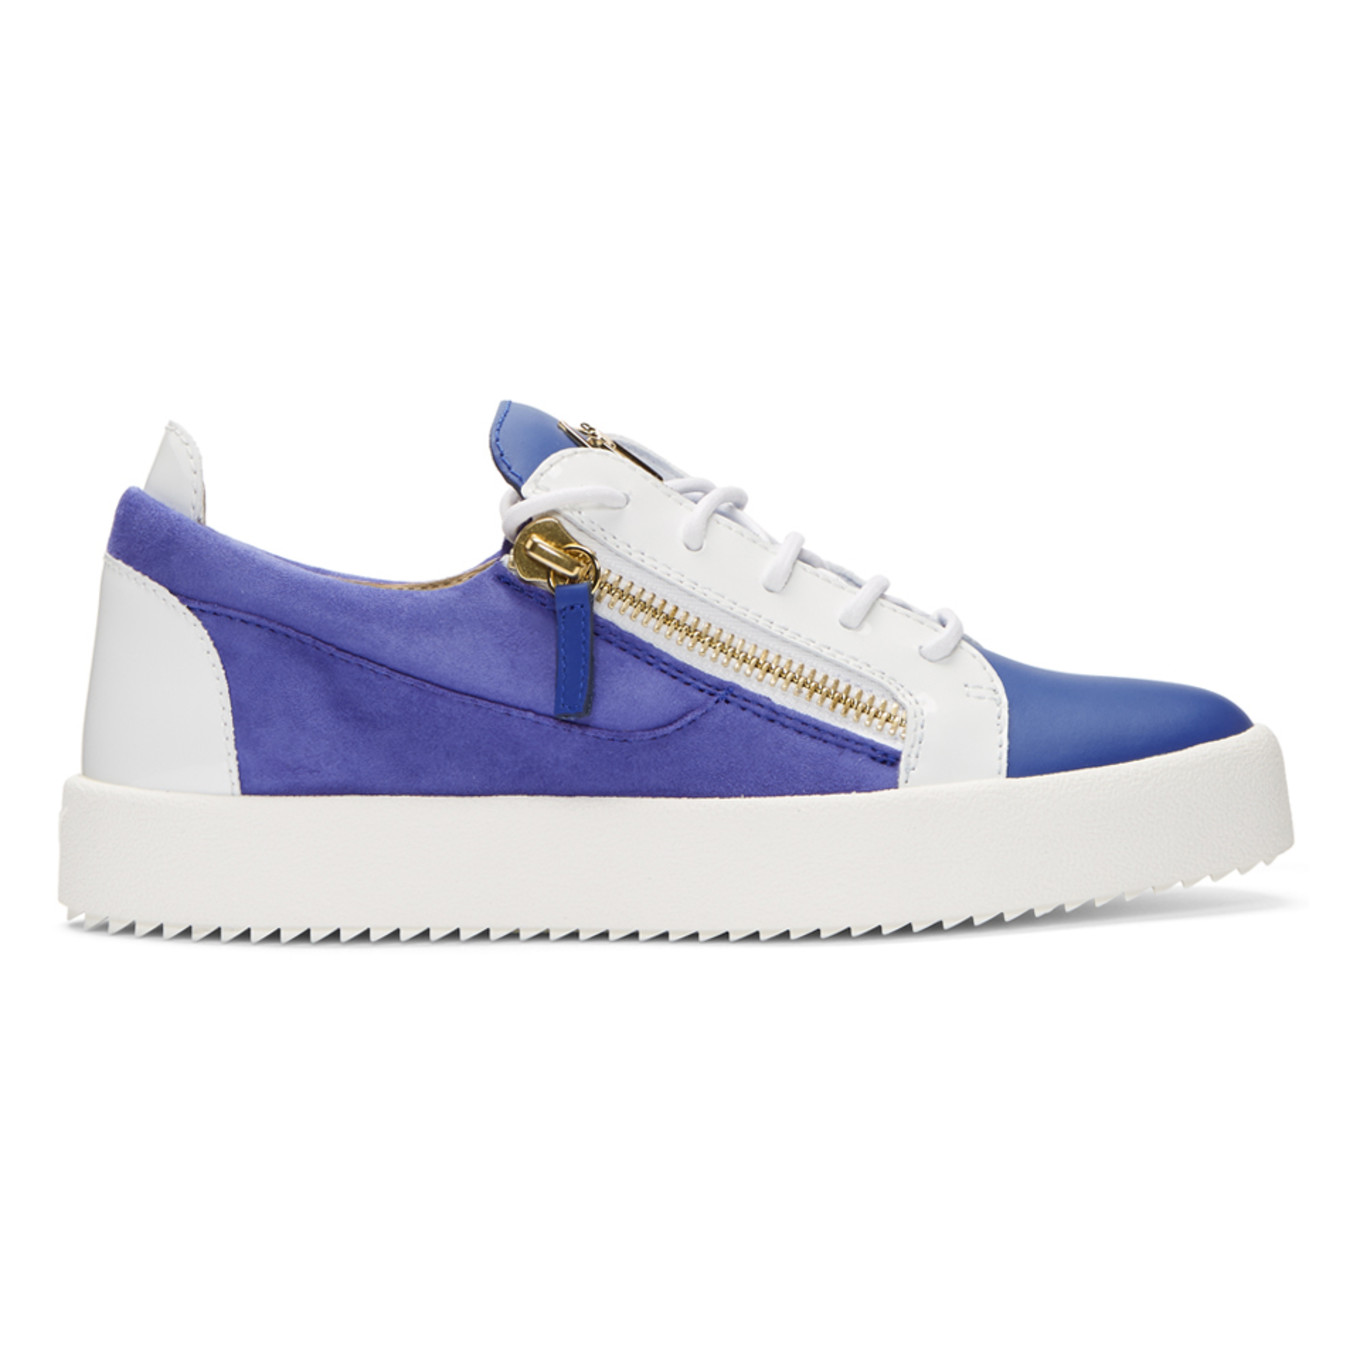 Giuseppe Zanotti Blue & White May London Sneakers